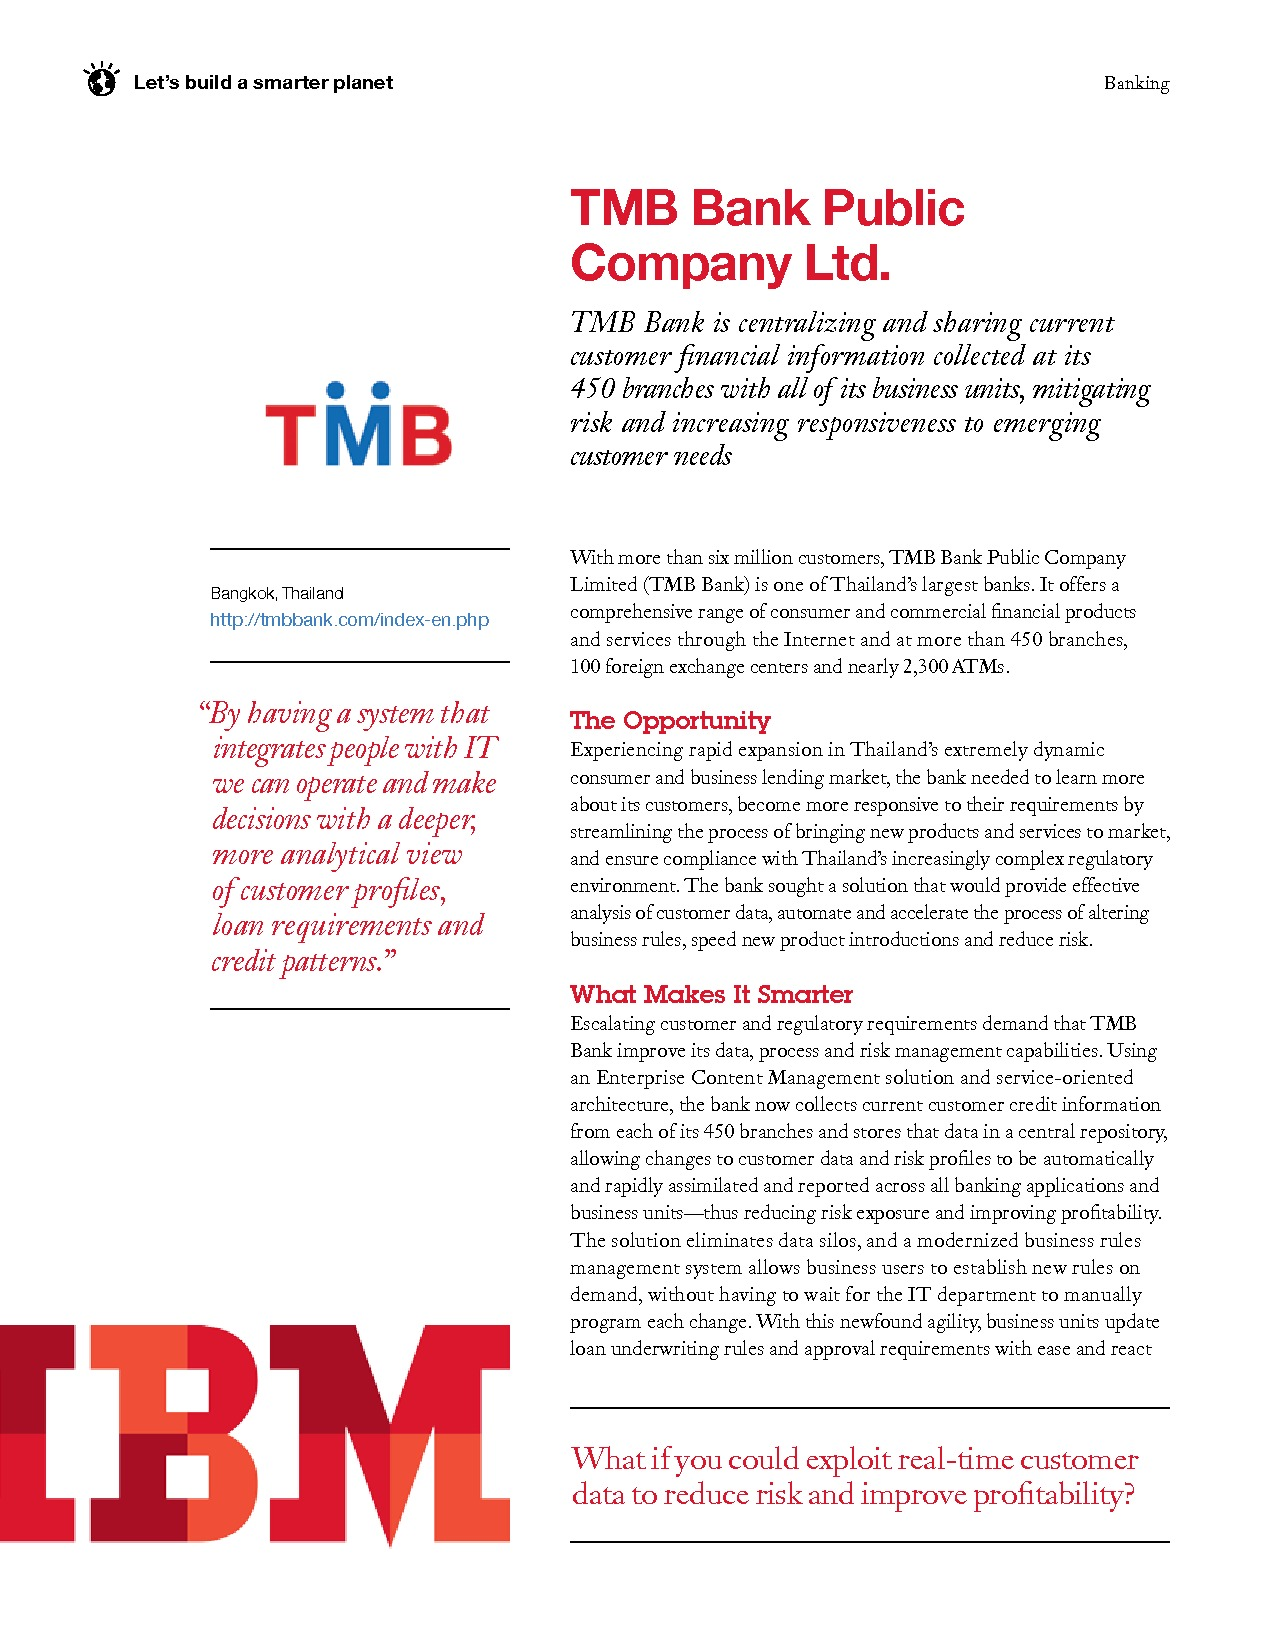 Case Study: Tmb Bank Uses ECM to Reduce Loan Processing Time